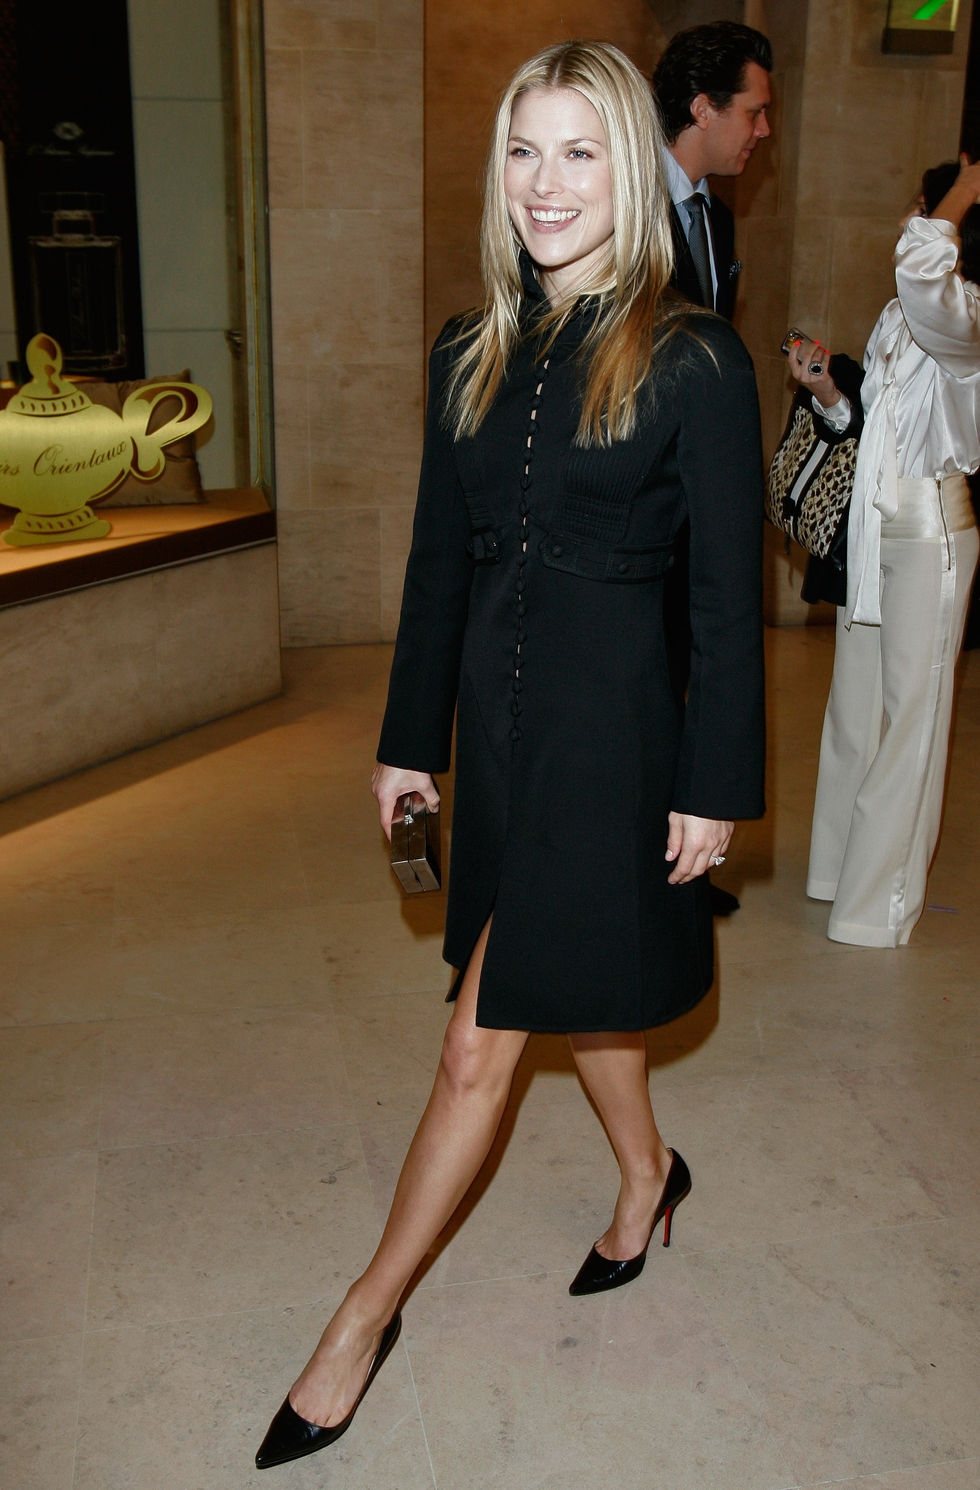 ali-larter-ungaro-fashion-show-at-paris-fashion-week-01